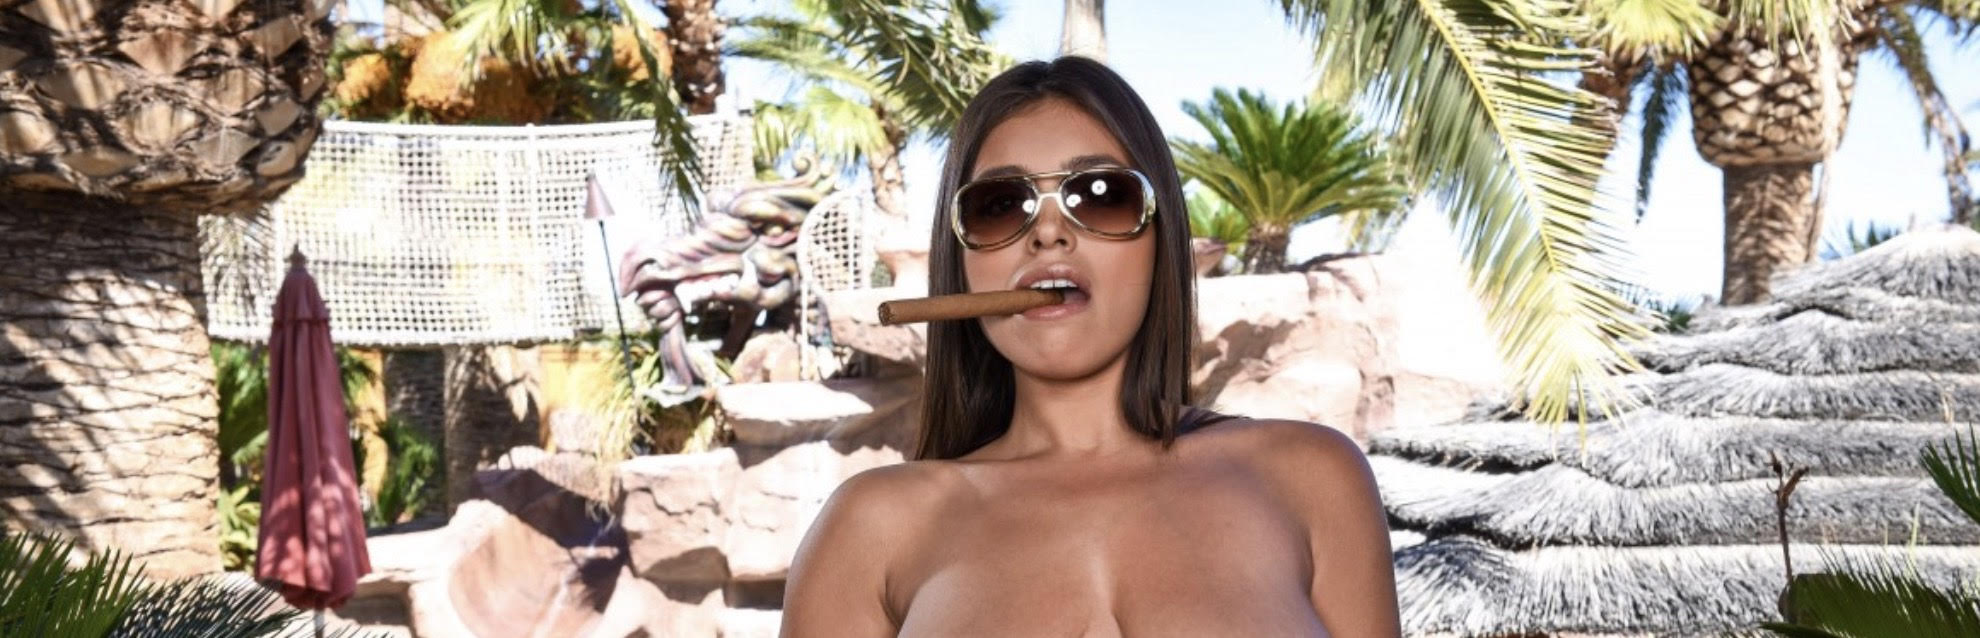 "alt=""Sexy Latina woman wearing sunglasses and smoking a big cigar"">"